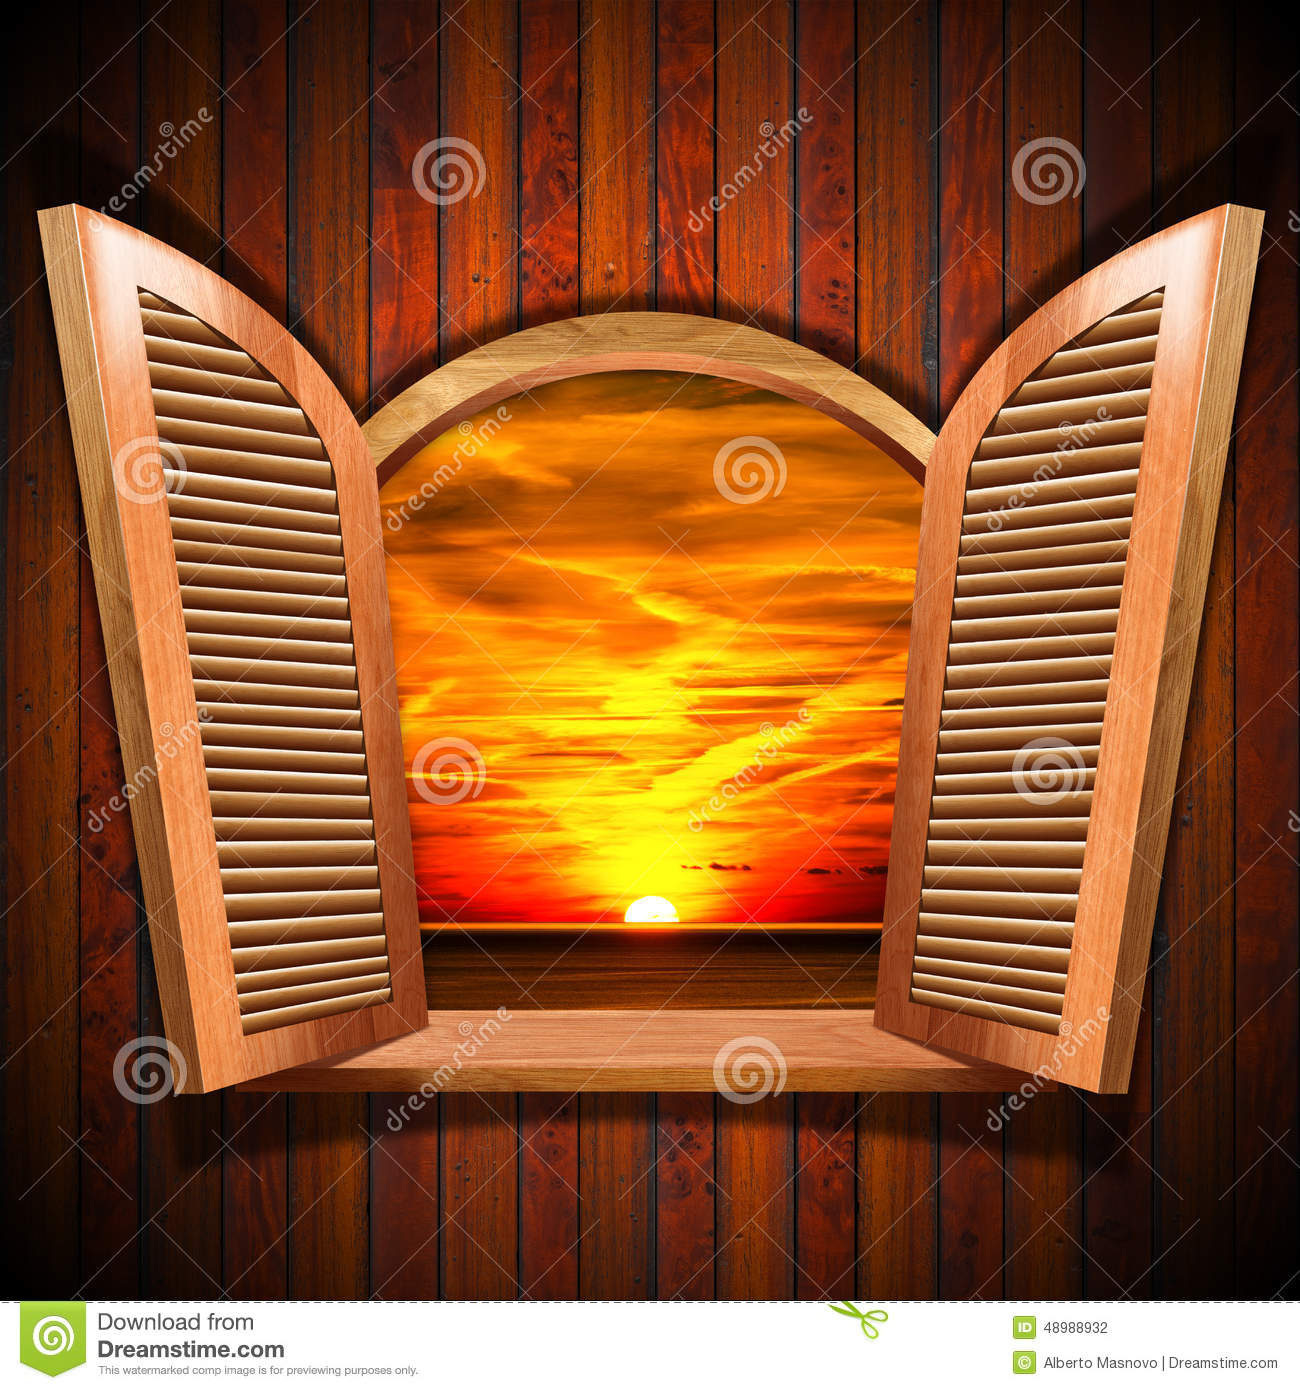 Open Window At Dusk: Open Window With View Of The Sunset Stock Illustration